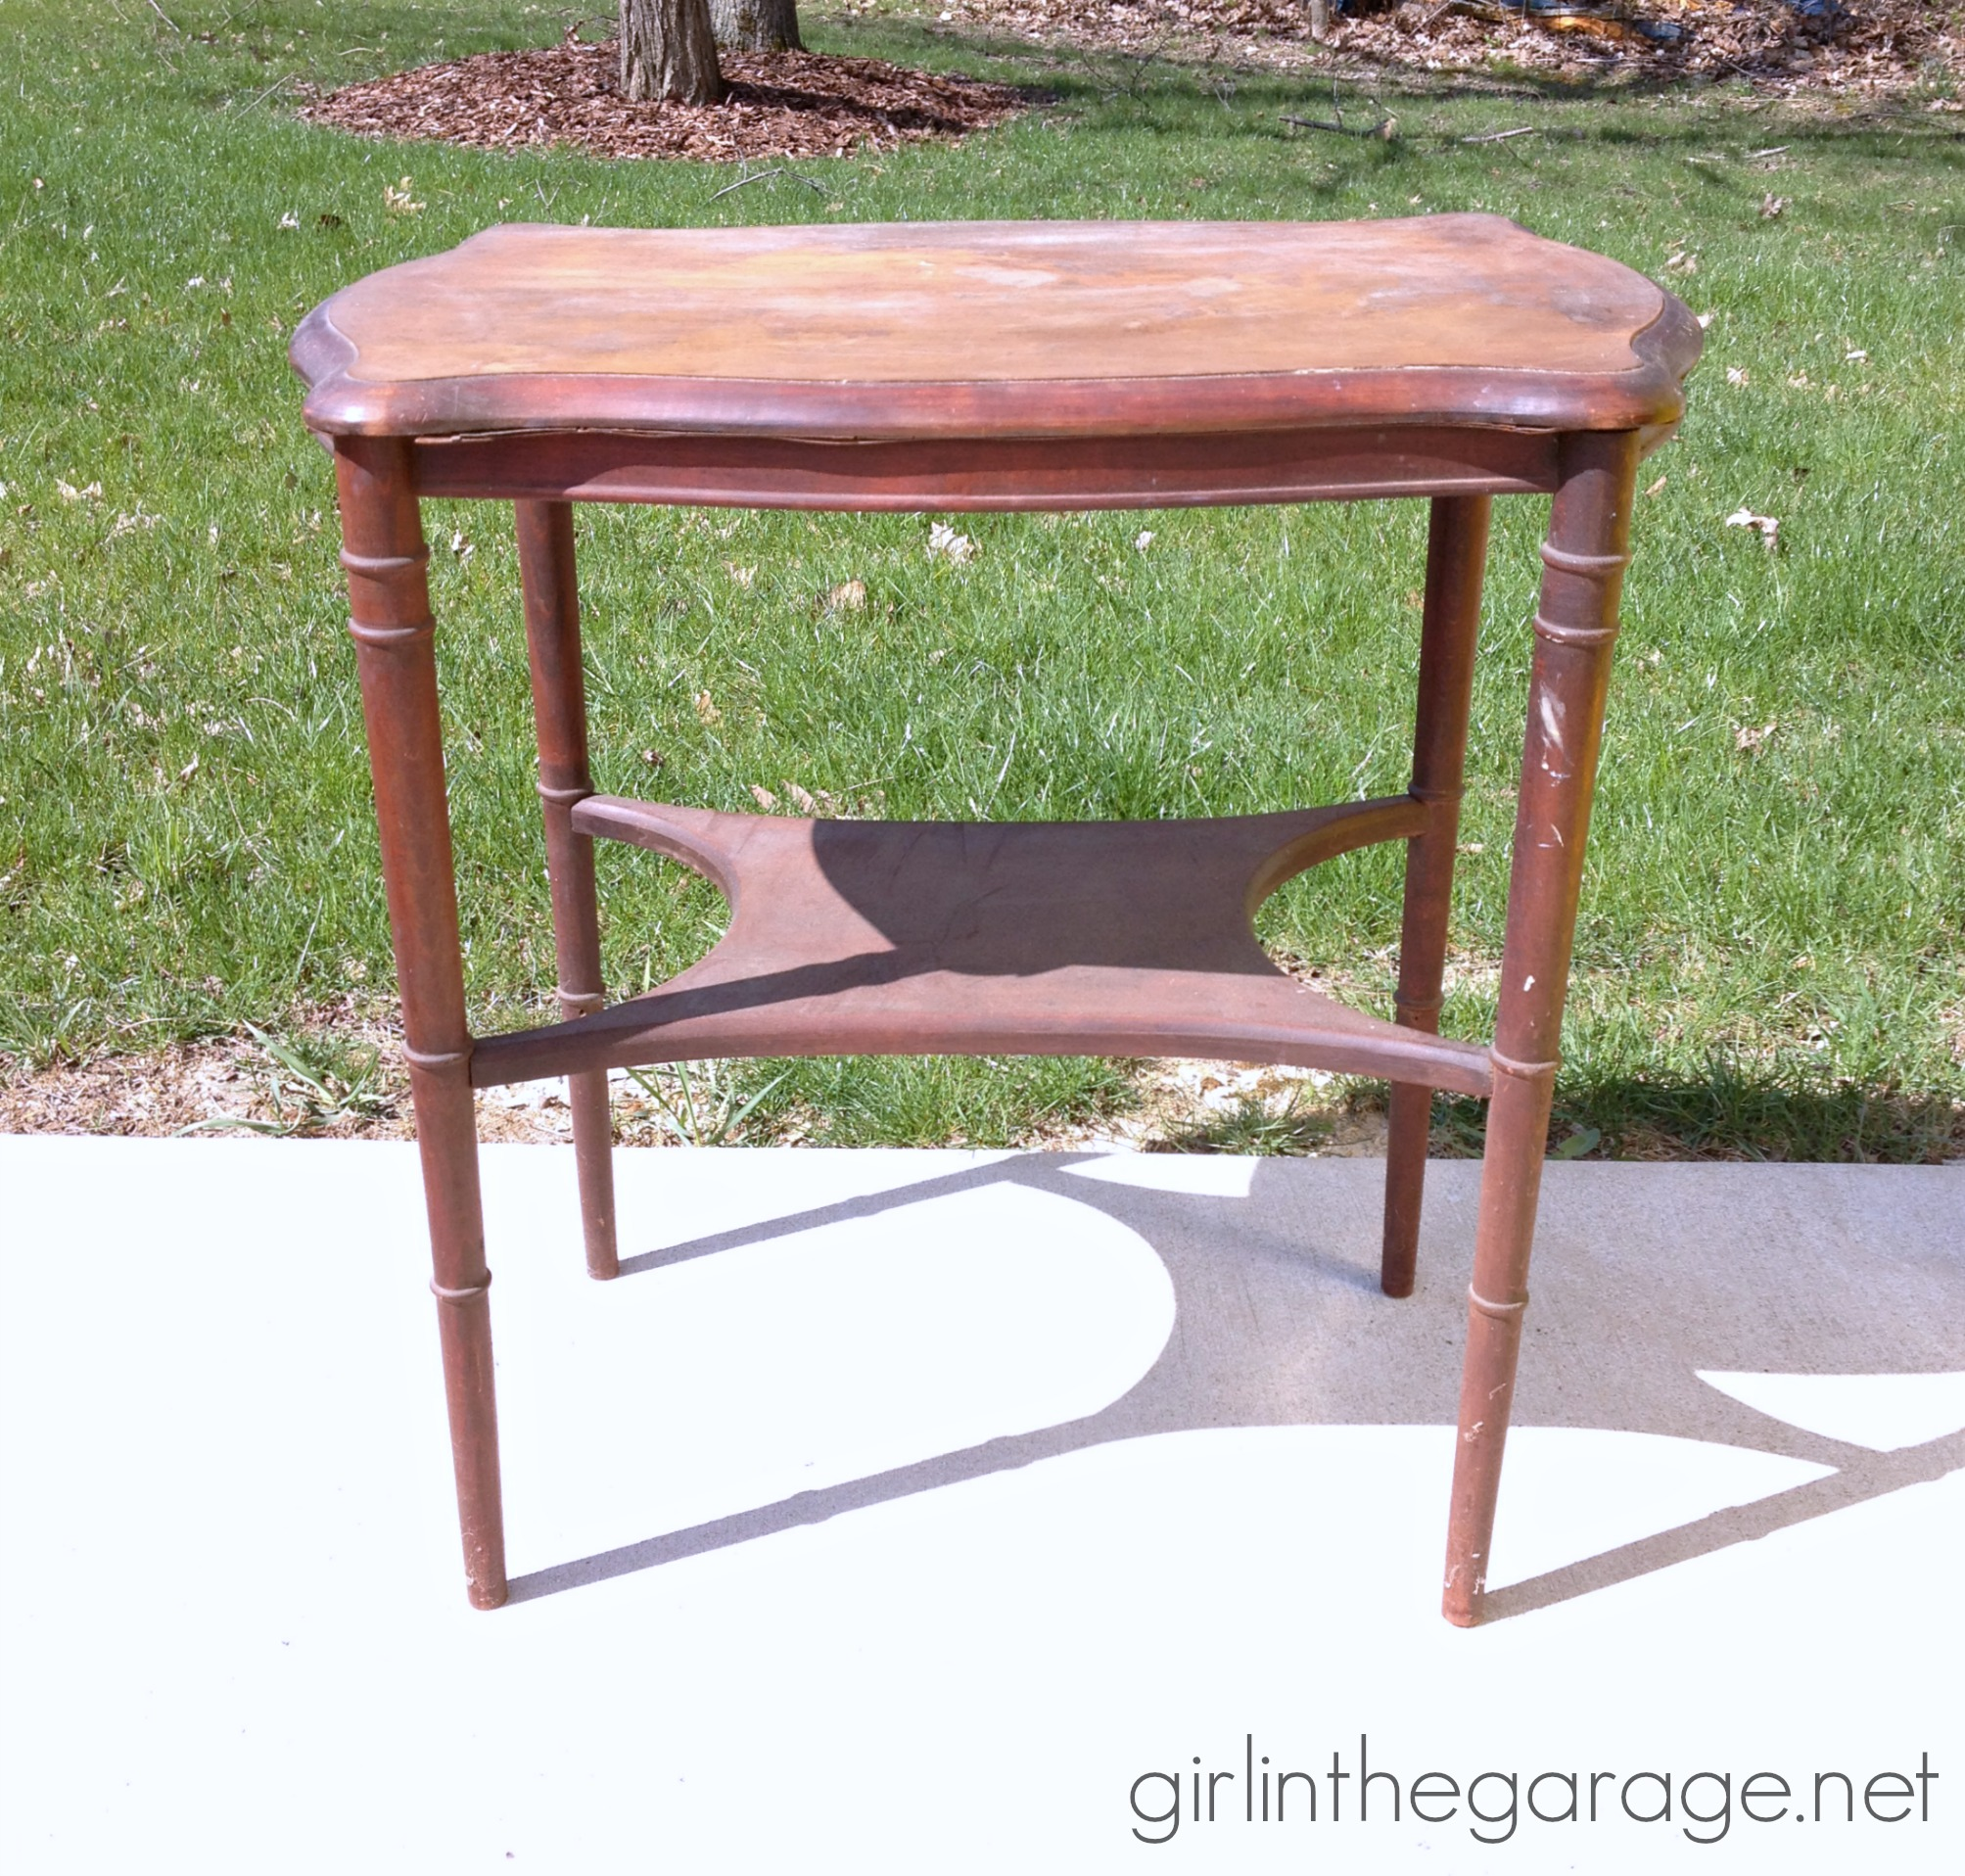 French love letter table makeover girl in the garage how to paint a french love letter table makeover a themed furniture makeover day project ccuart Images